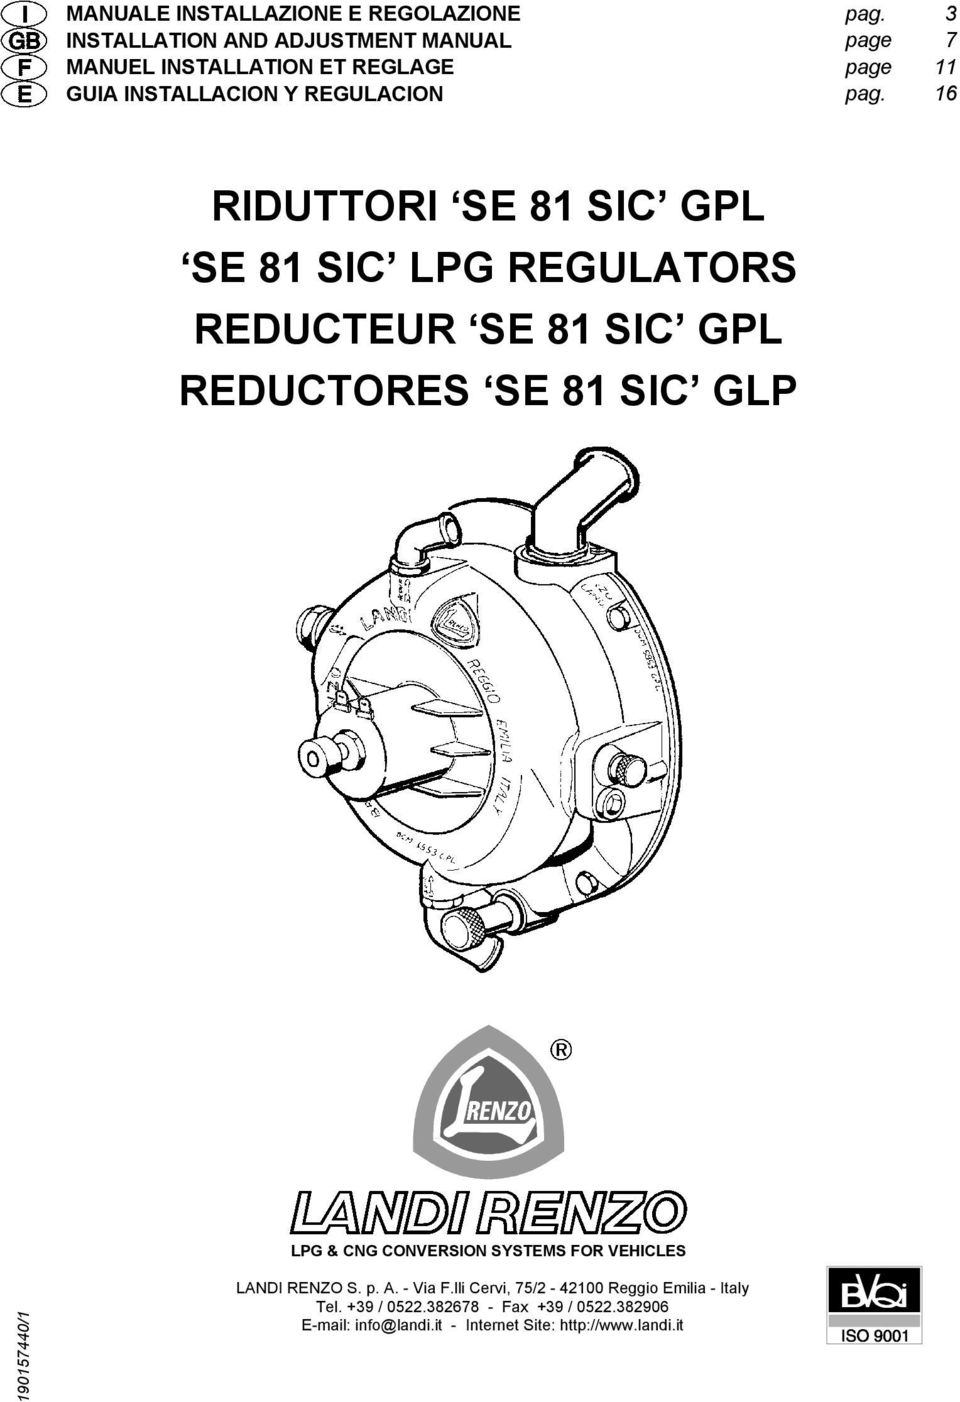 16 RIDUTTORI SE 81 SIC GPL SE 81 SIC LPG REGULATORS REDUCTEUR SE 81 SIC GPL REDUCTORES SE 81 SIC GLP LPG & CNG CONVERSION